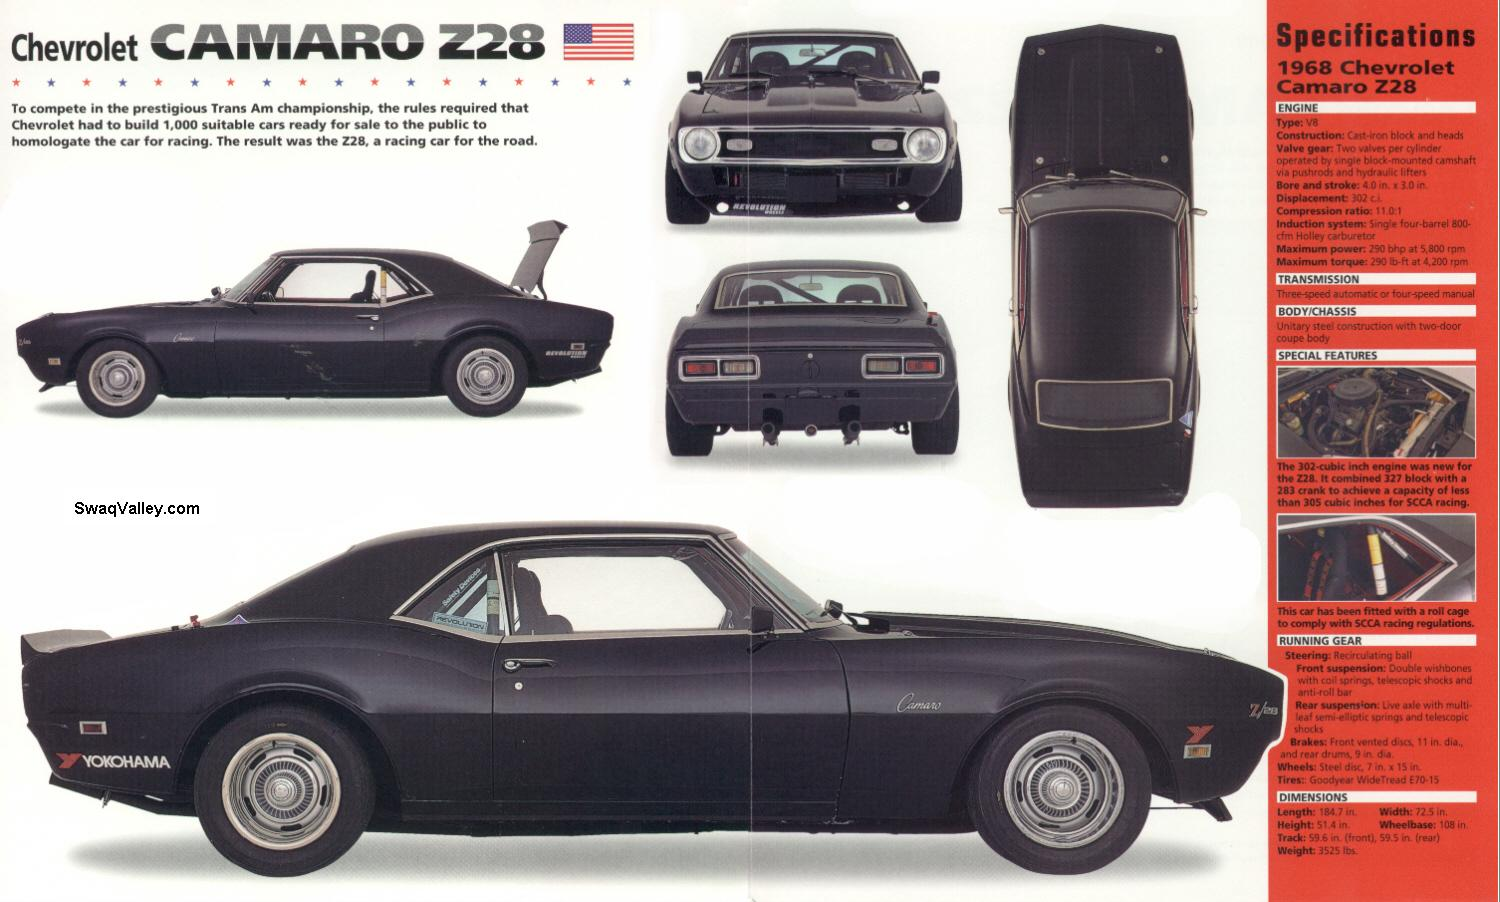 All About Muscle Car 1968 Chevrolet Camaro Description Rs Black Z28 Selling Brocure And Detil Features